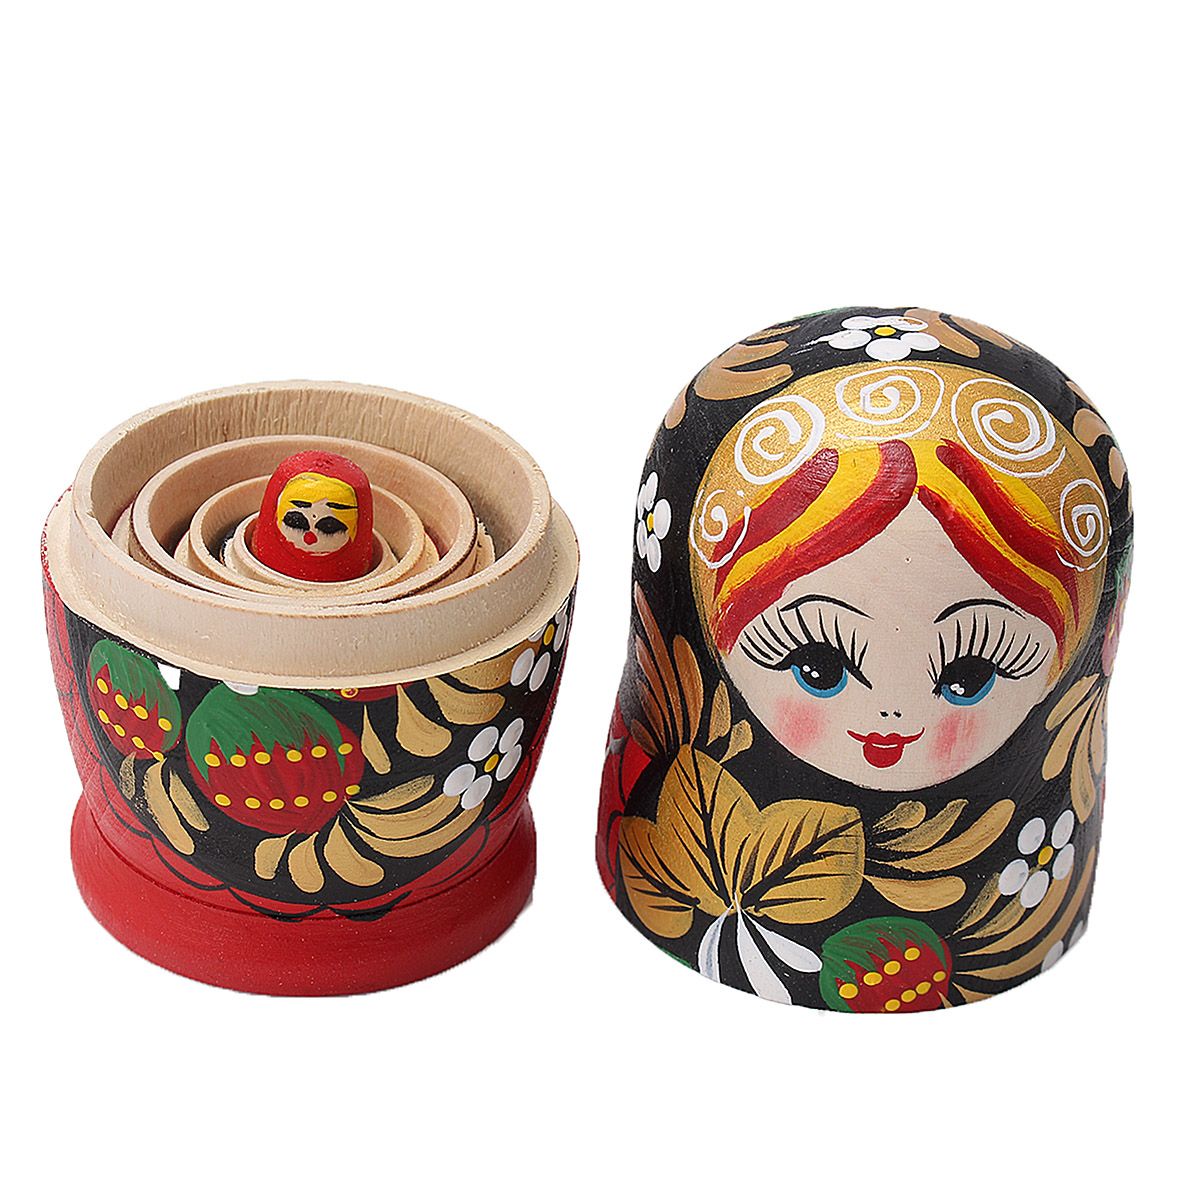 5PCS/Set Wooden Doll Matryoshka Nesting Russian Babushka Toy Gift Decor Collection